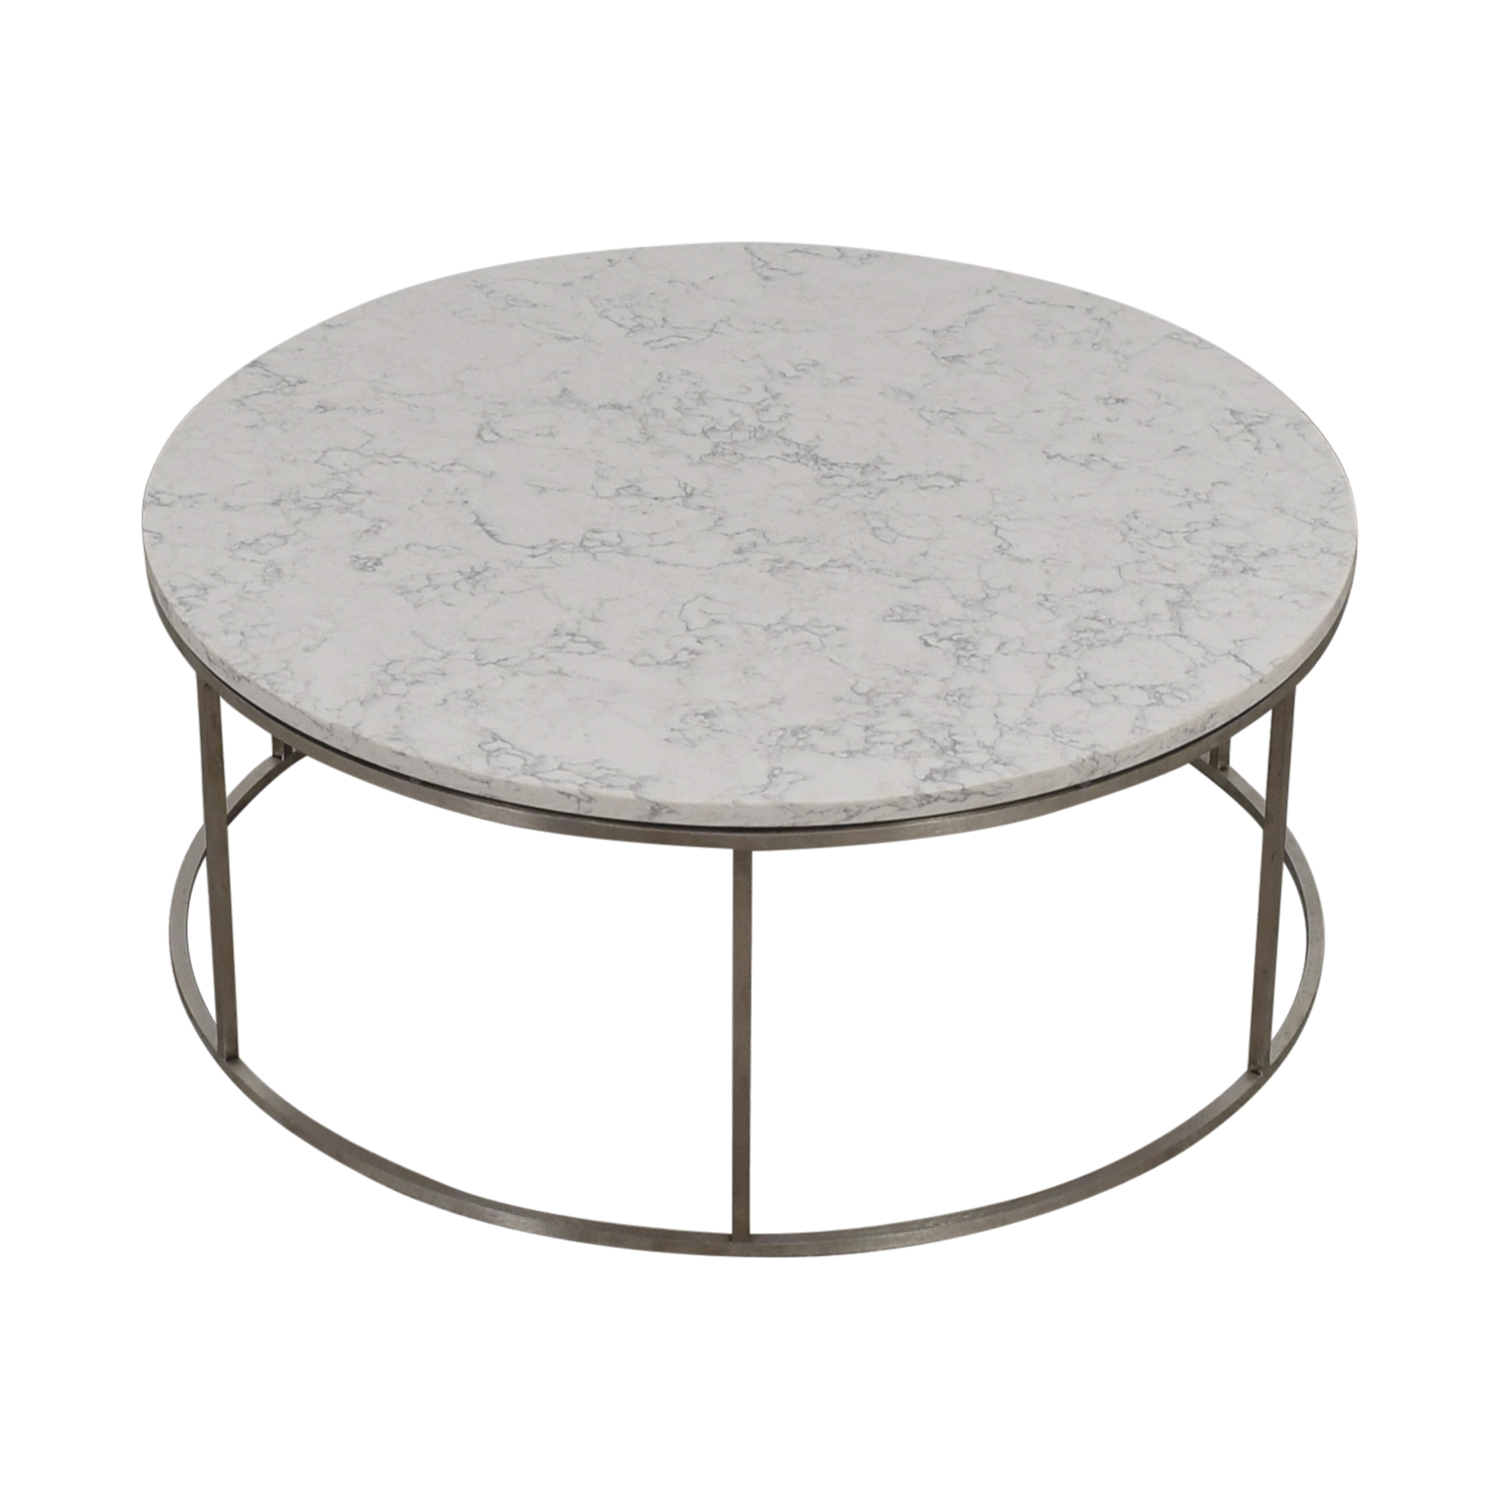 round marble table and chairs large accent 53 off room board top